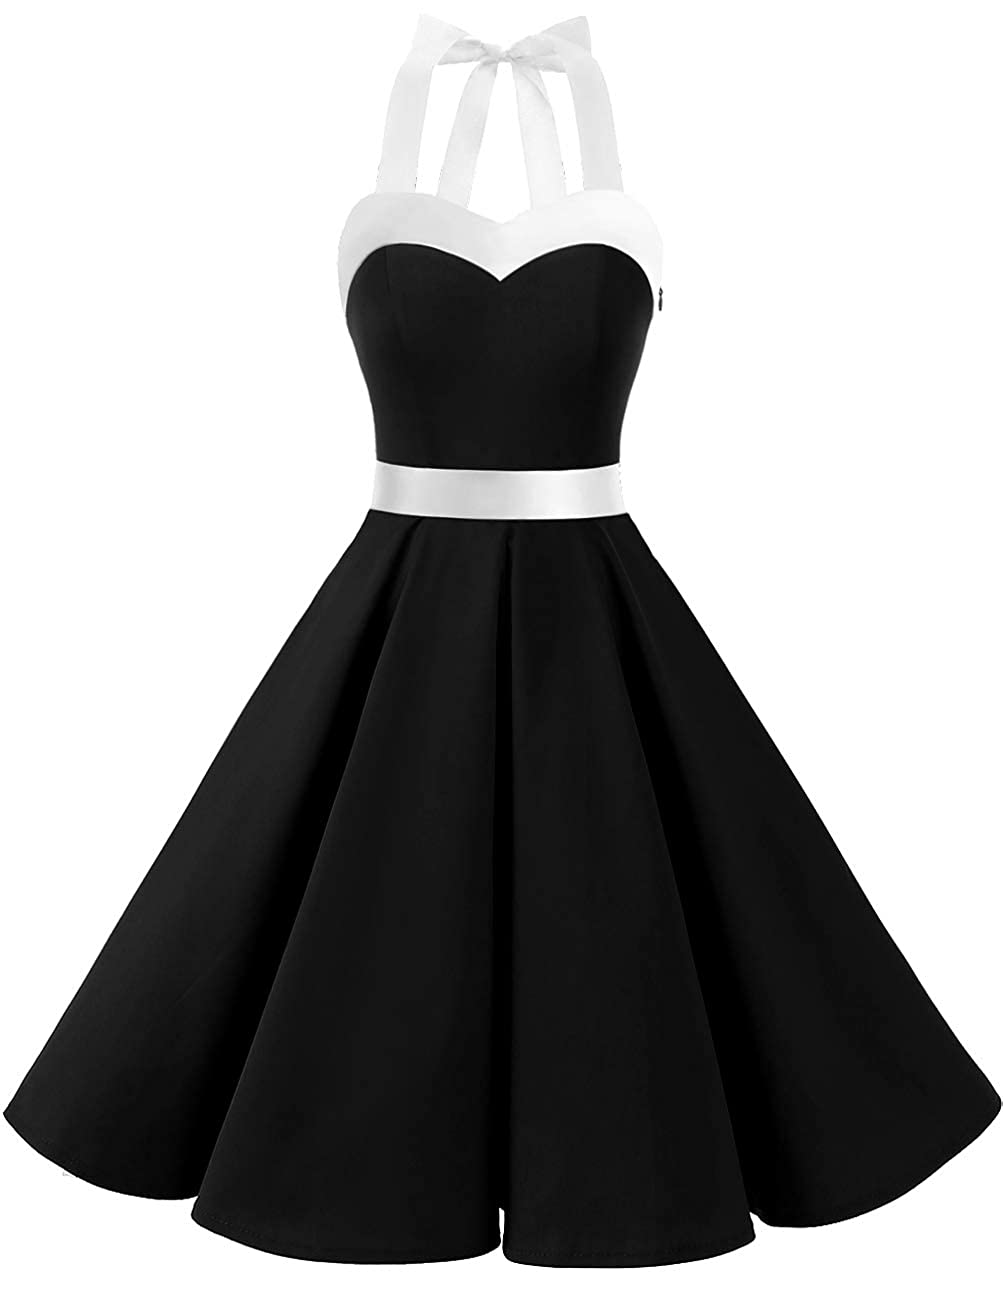 TALLA M. Dresstells® Halter 50s Rockabilly Polka Dots Audrey Dress Retro Cocktail Dress Black White M